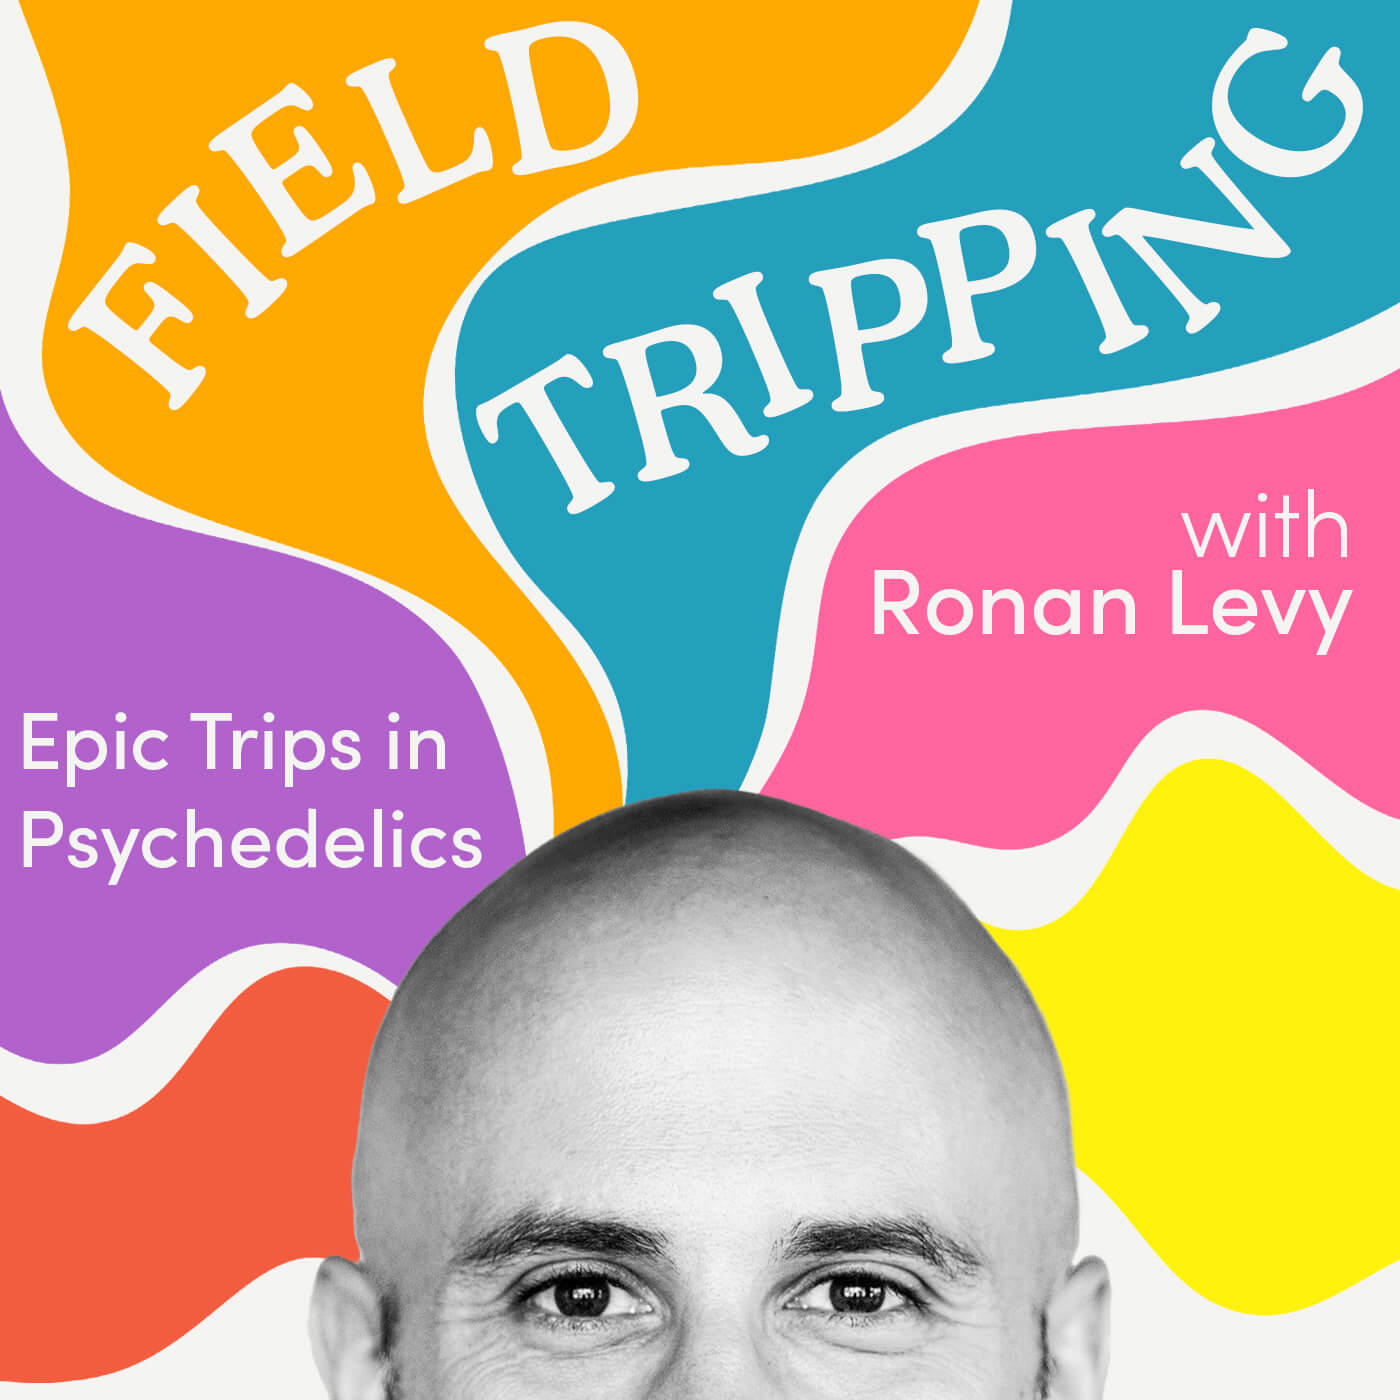 Field Trip Psychedelics Announces New Podcast, Field Tripping: Epic Trips in Psychedelics